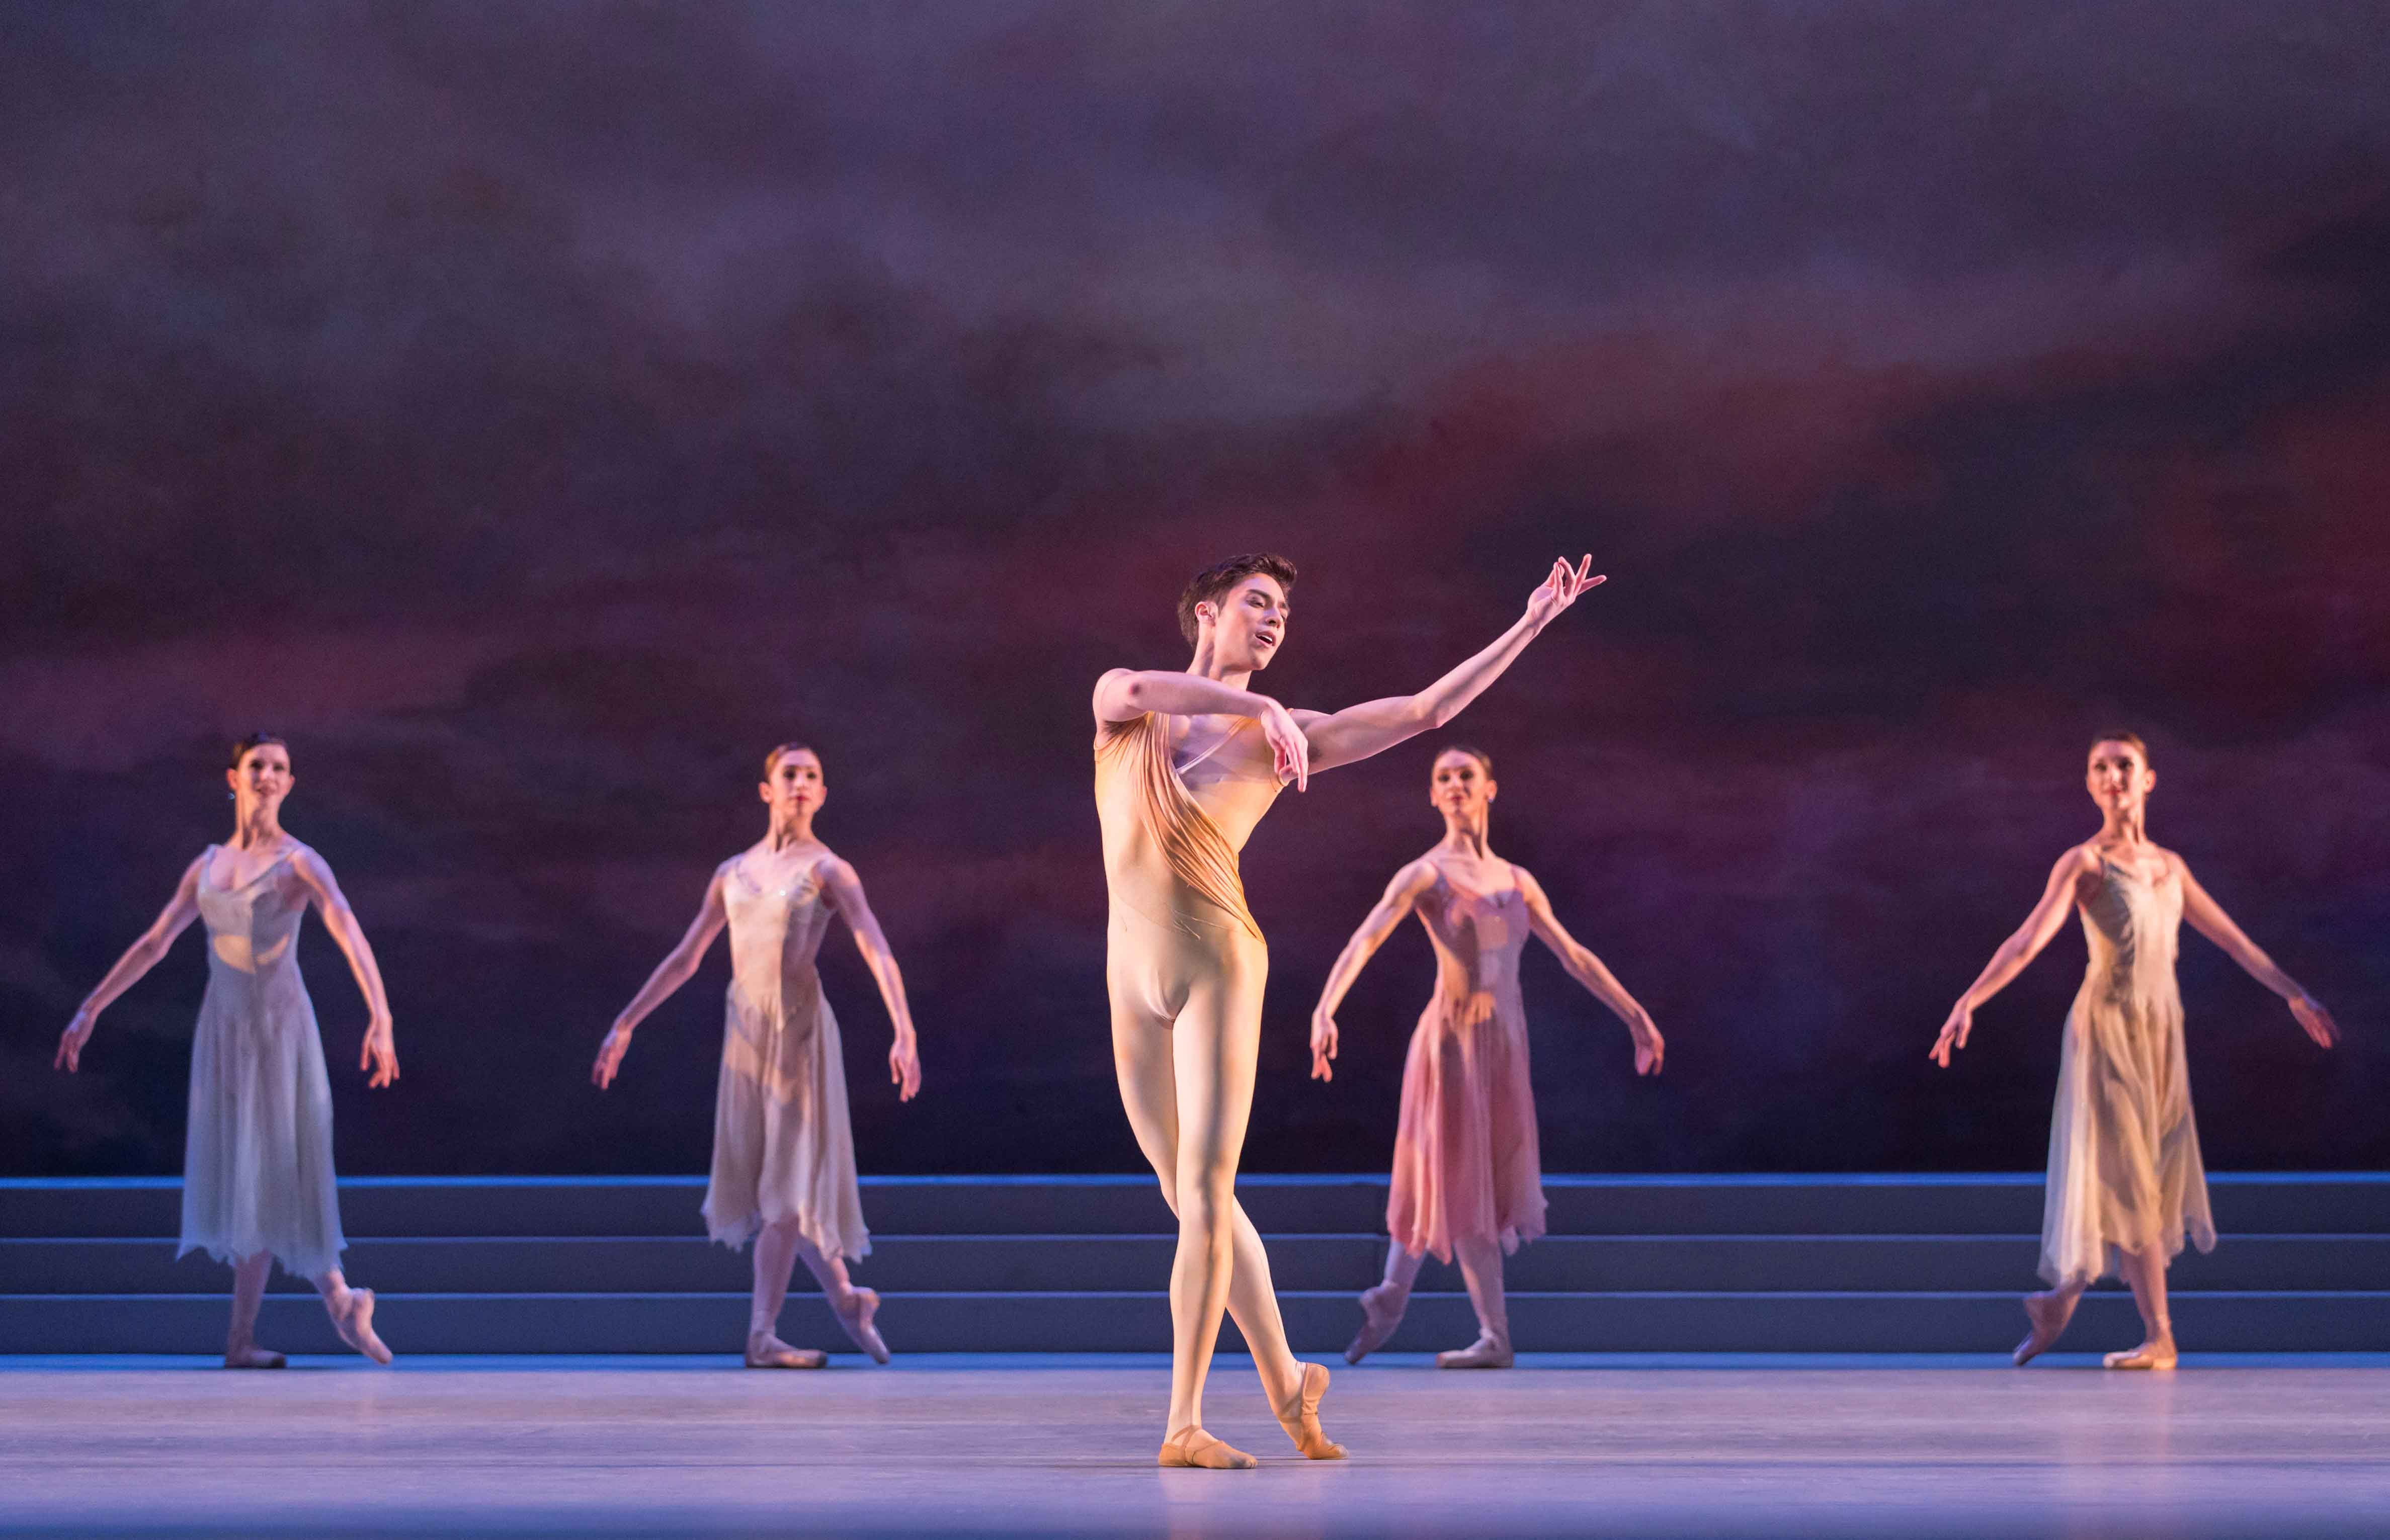 : James Hay and members of The Royal Ballet